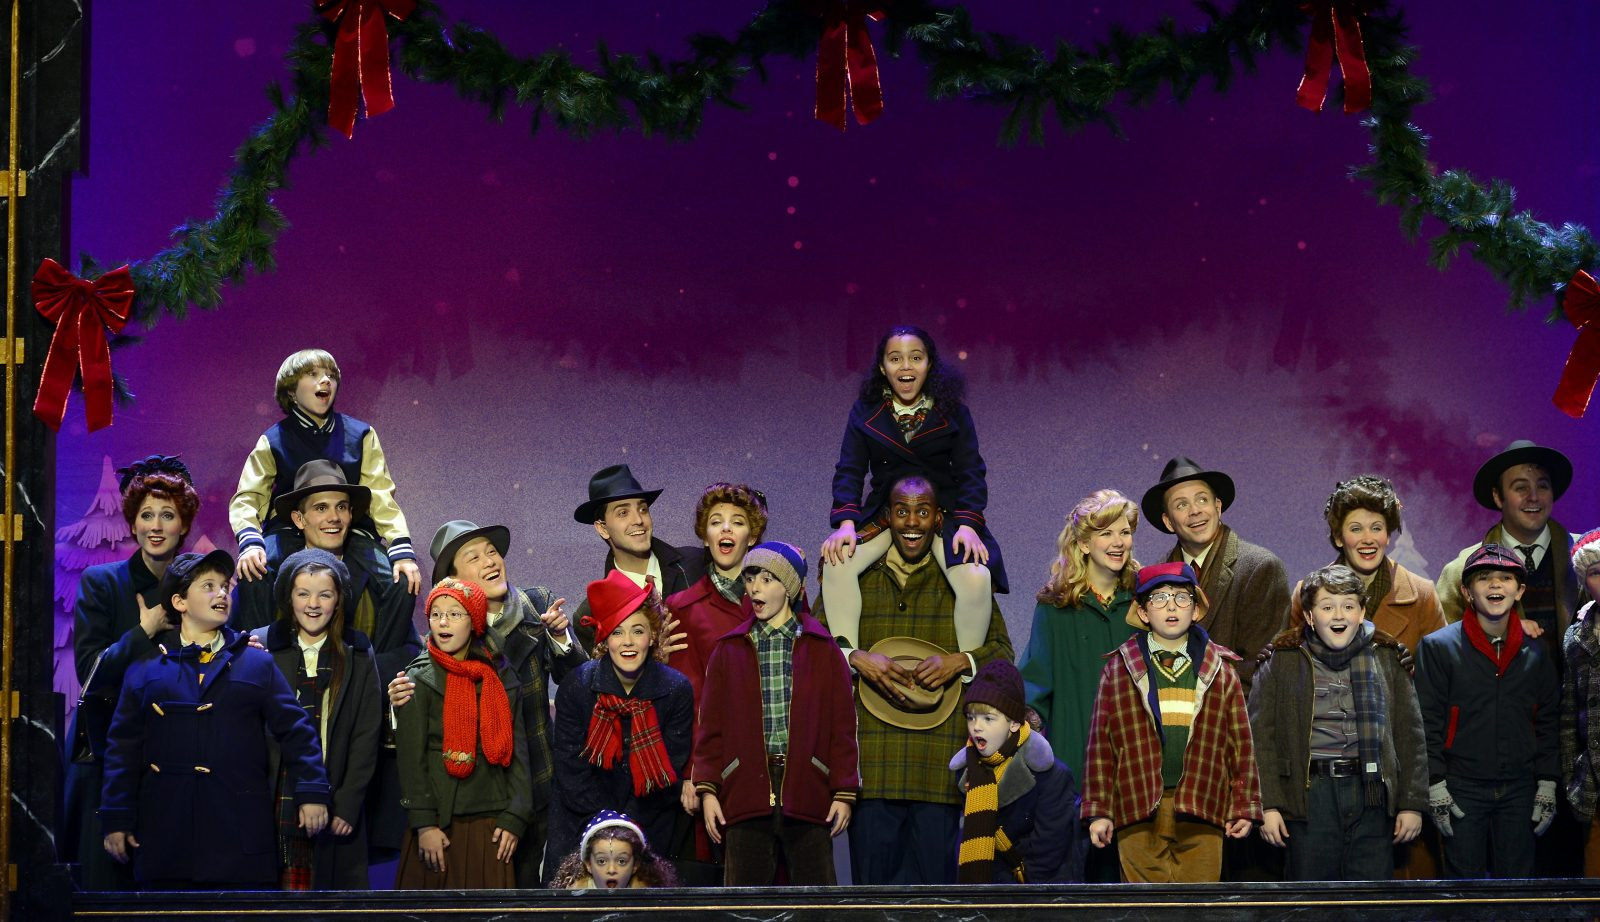 'A Christmas Story: The Musical' plays through Dec. 18 in Shea's Performing Arts Center.